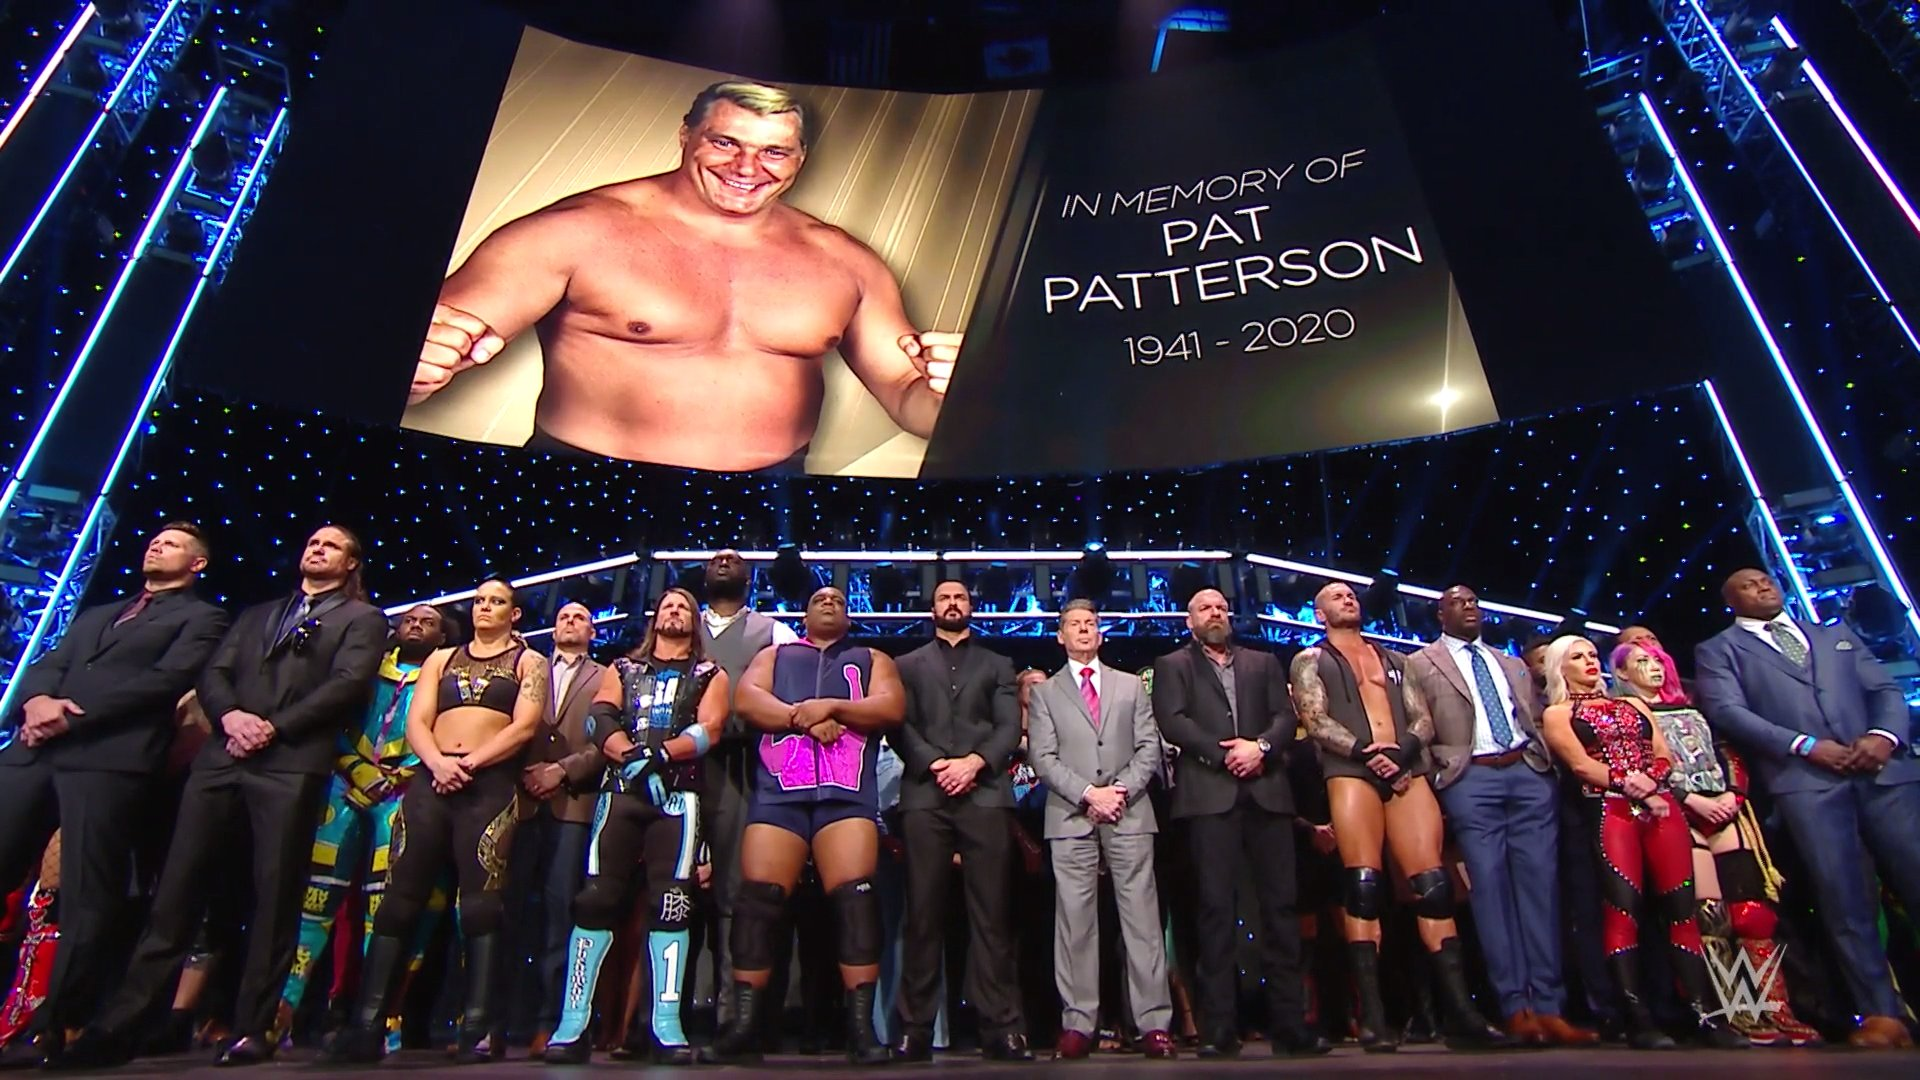 WWE raw superstars tribute to pat patterson December 7, 2020